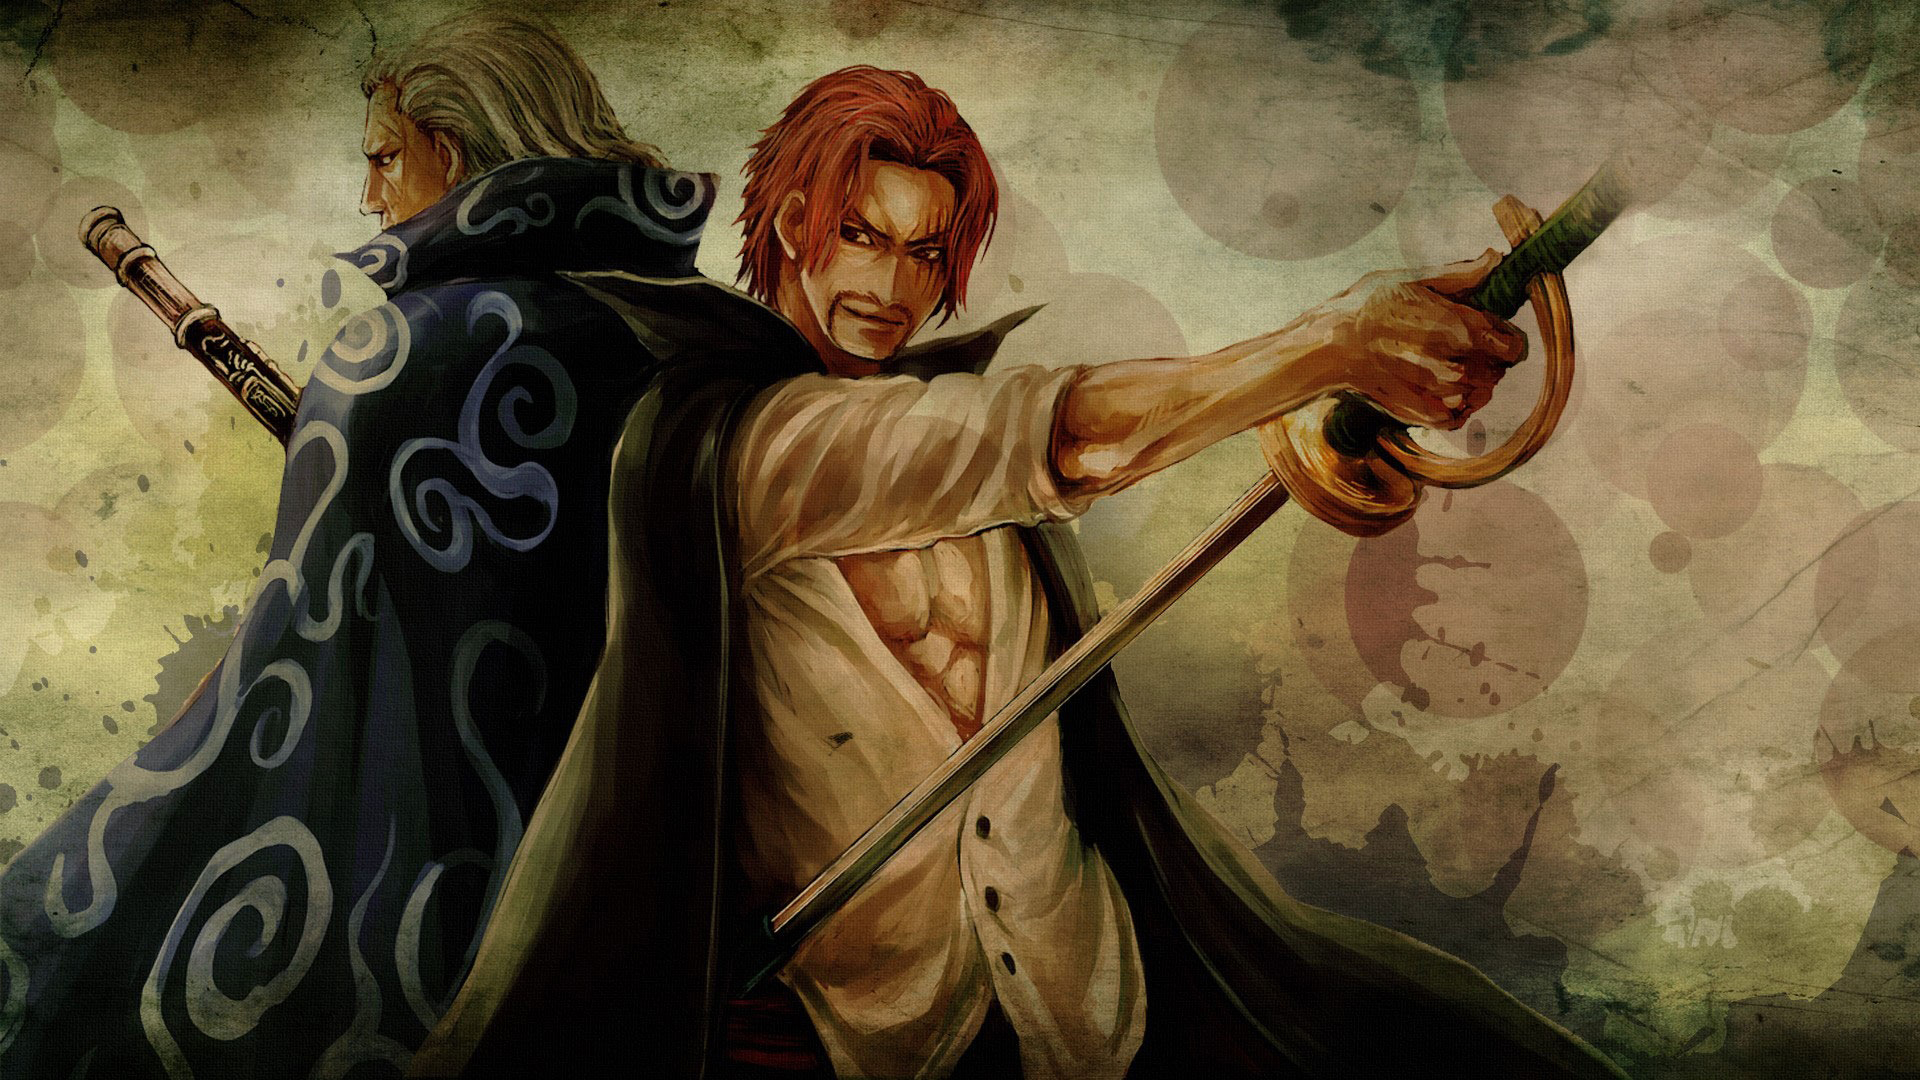 Desktop Wallpapers One Piece Young Man Anime 1920x1080